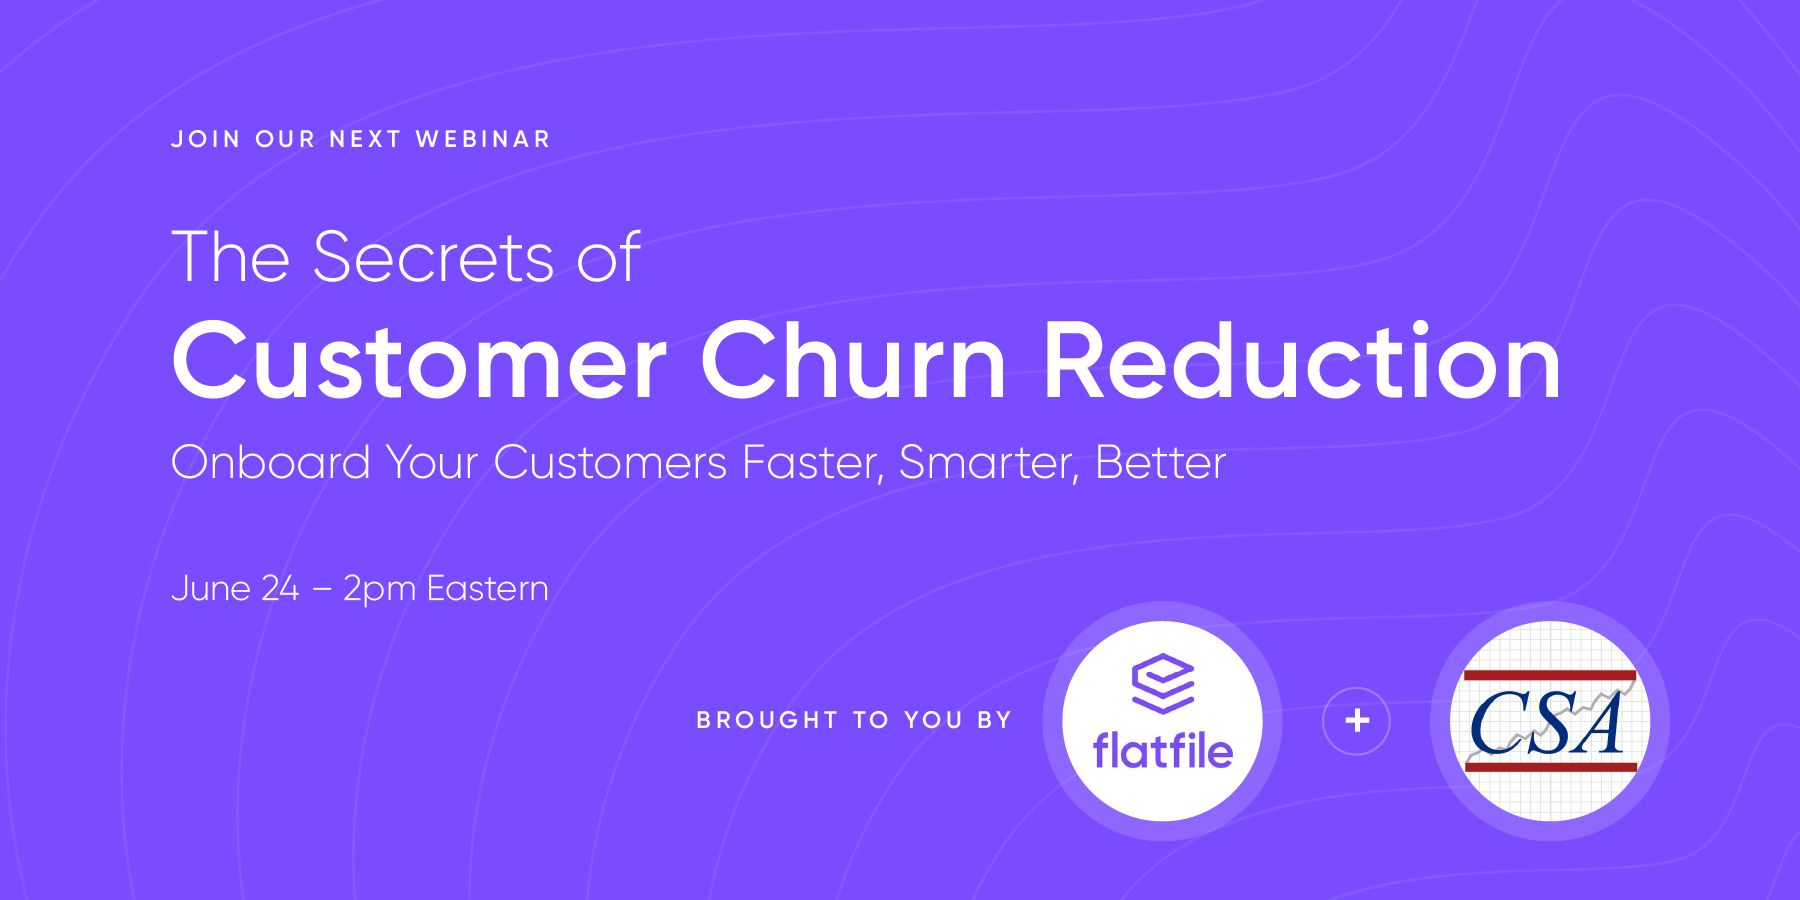 The Secrets of Customer Churn Reduction: Onboarding your Customers Faster, Smarter, Better